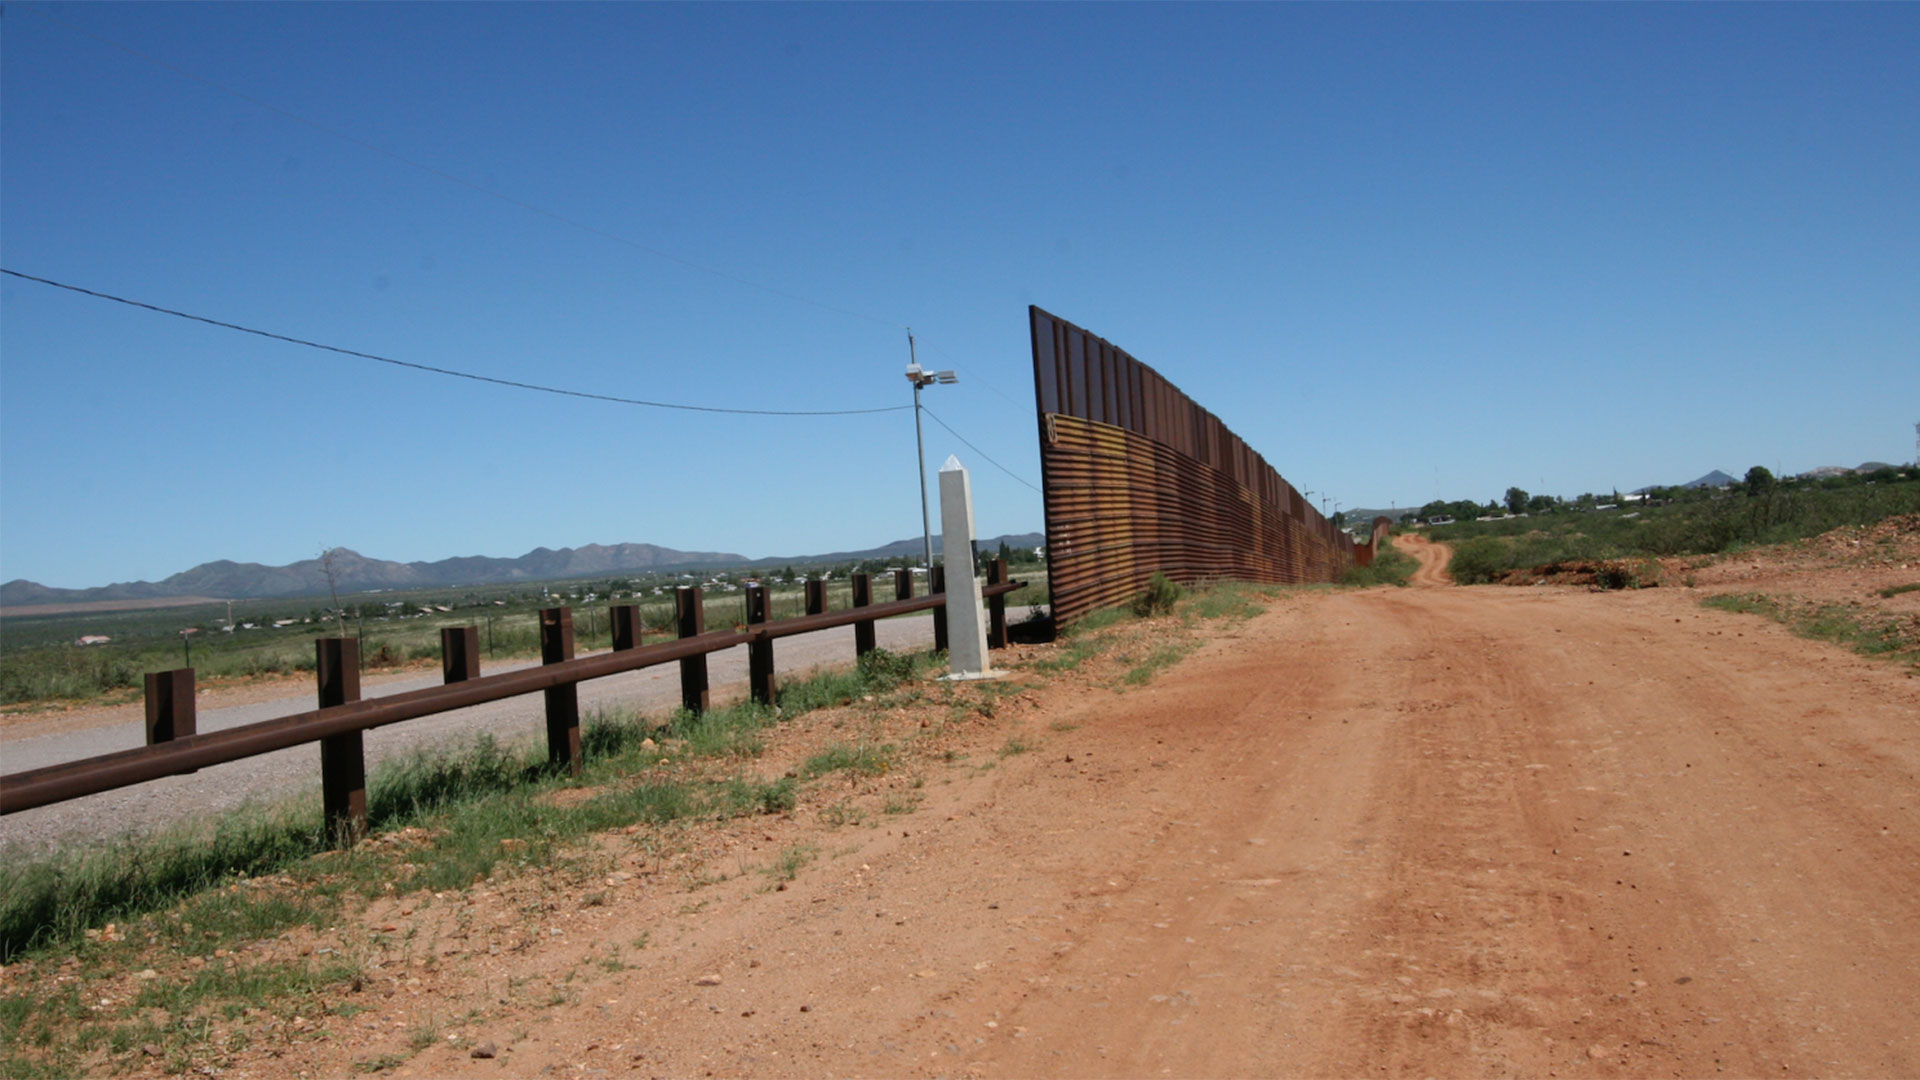 The old border wall made of military landing platform that stood for years dividing Naco, Arizona, and Naco, Sonora.